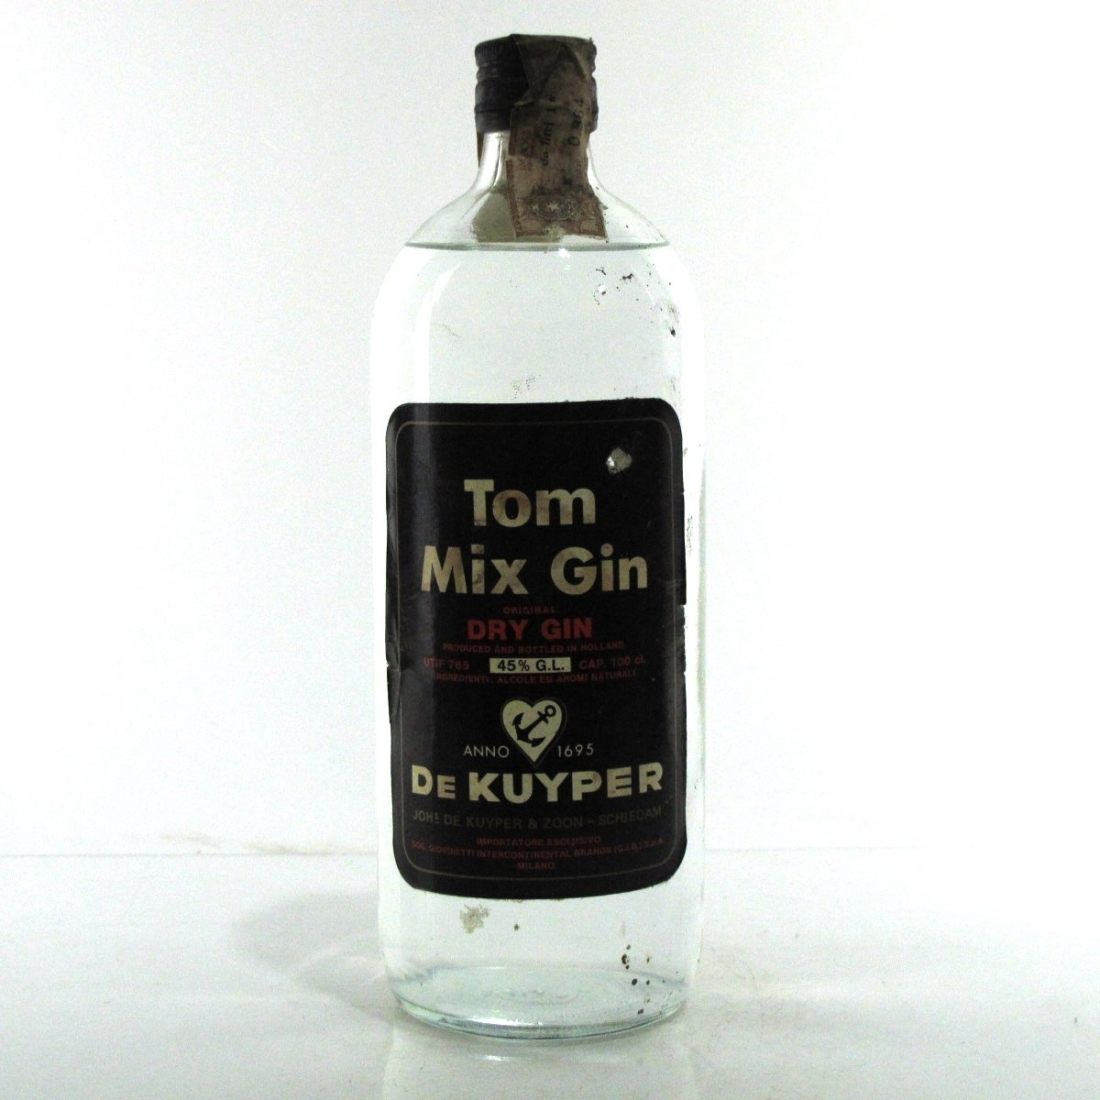 Tom Mix Dry Gin 1970s 1 Litre